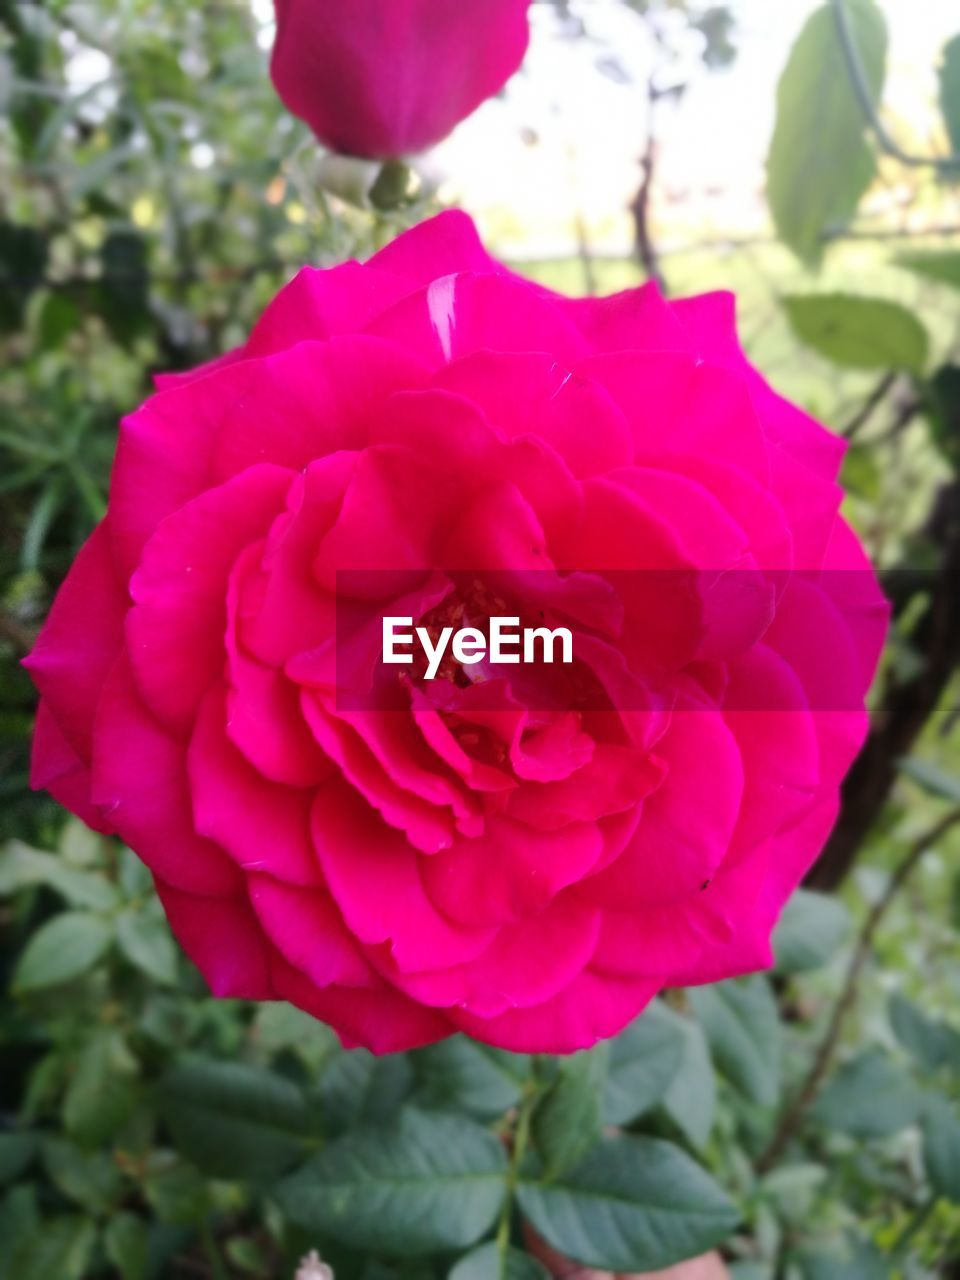 flower, petal, nature, fragility, beauty in nature, flower head, growth, pink color, no people, rose - flower, freshness, close-up, outdoors, day, plant, wild rose, blooming, focus on foreground